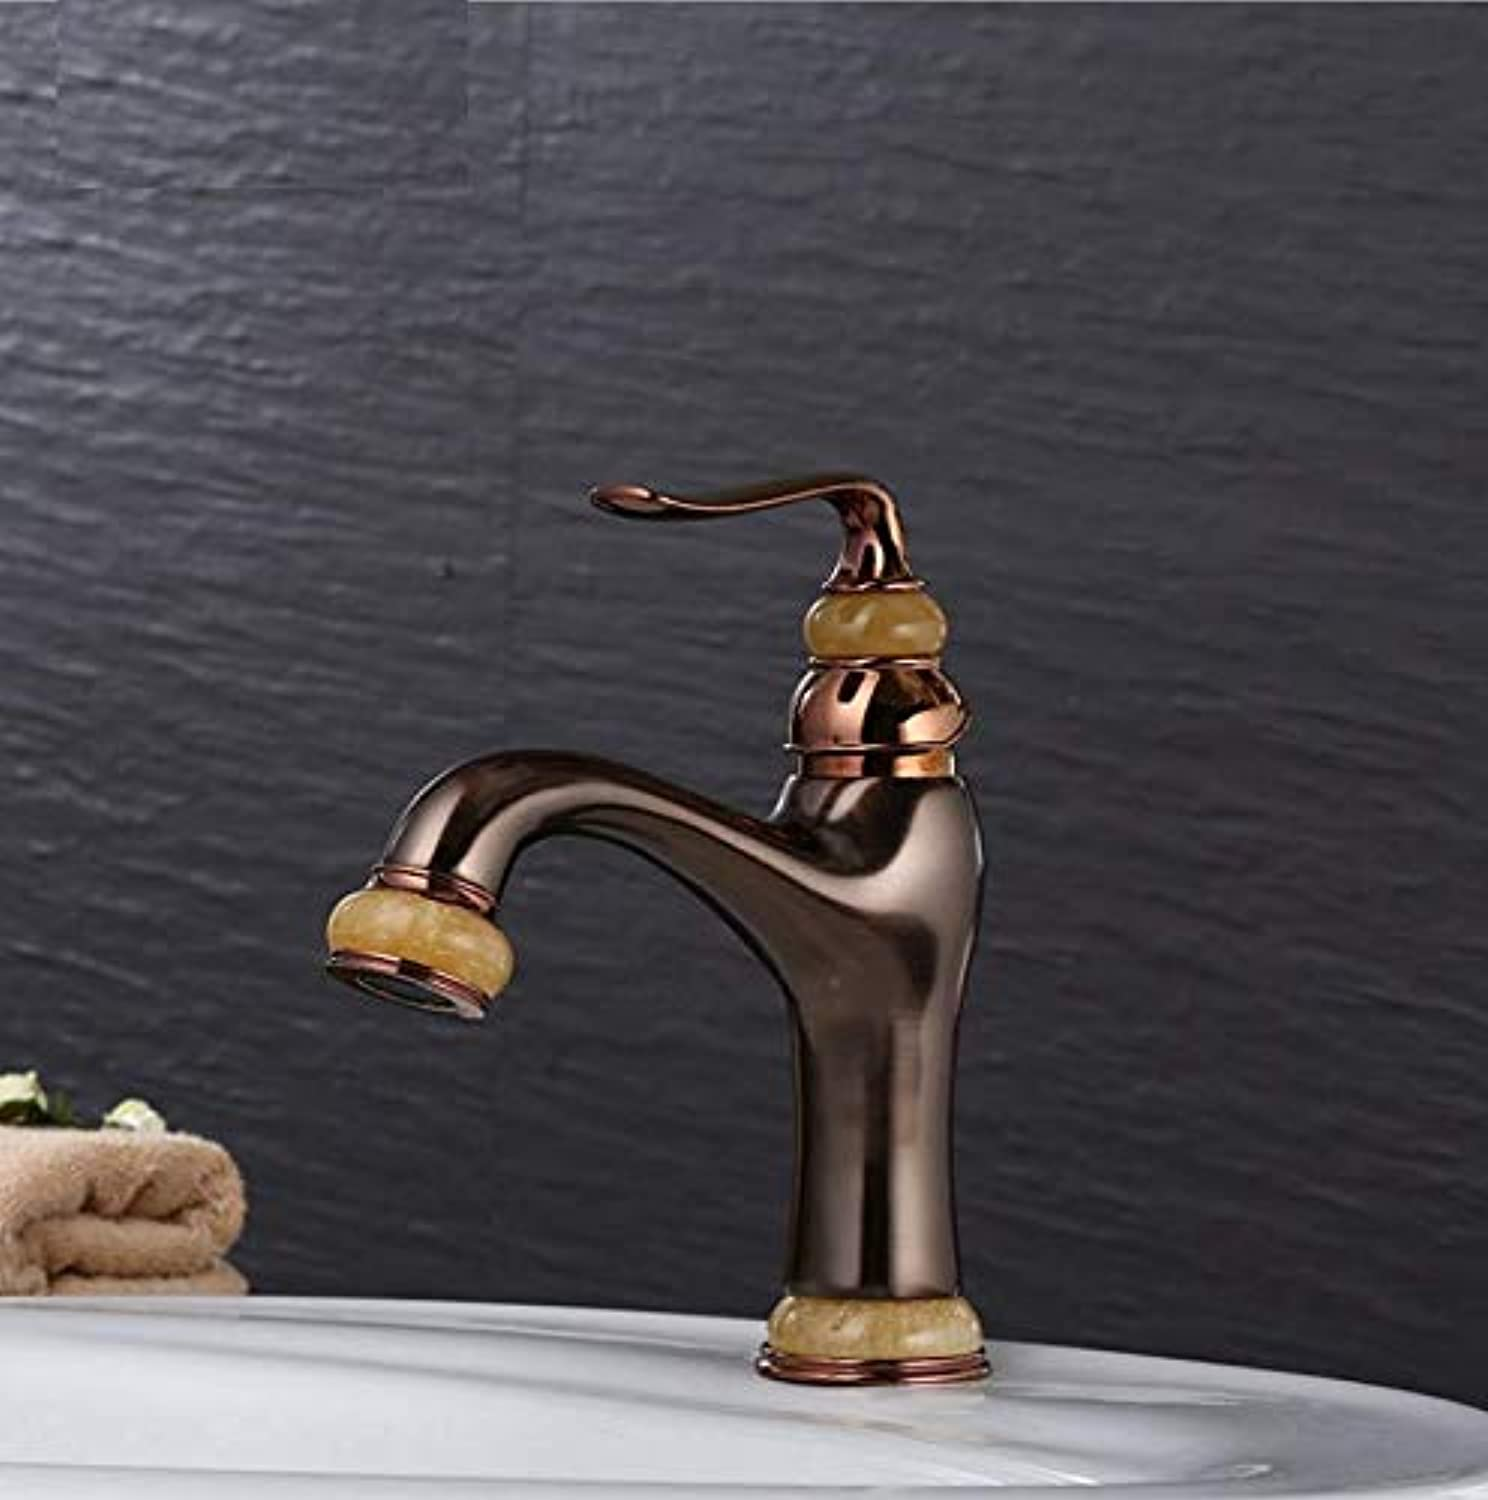 Dwthh Basin Faucets Solid Brass Deck Mount Bathroom Sink Faucet Single Handle Easy Install Vintage Antique Mixer Tap